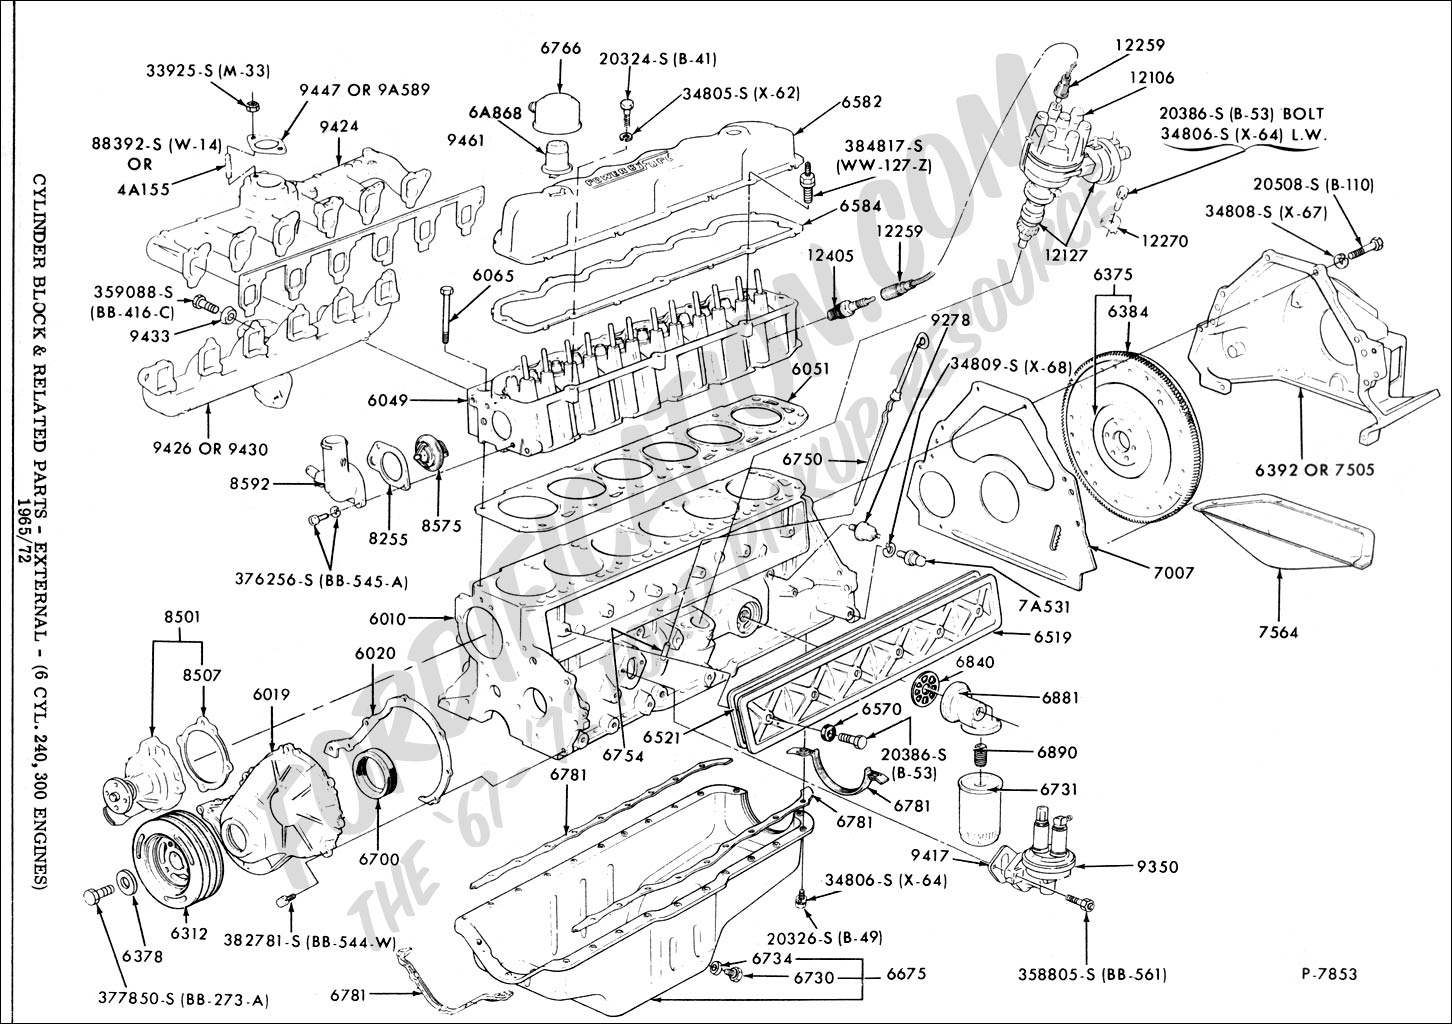 1995 international 4900 wiring diagram with 1098391 Oil Pump Location And Replacement on Wiring Diagram For 2003 Gmc Sierra furthermore Jeep Cherokee 1997 2001 Fuse Box Diagram 398208 besides Air Alarm Wiring Diagram 2001 International 4900 furthermore International 1310 Wiring Diagram together with 1098391 Oil Pump Location And Replacement.